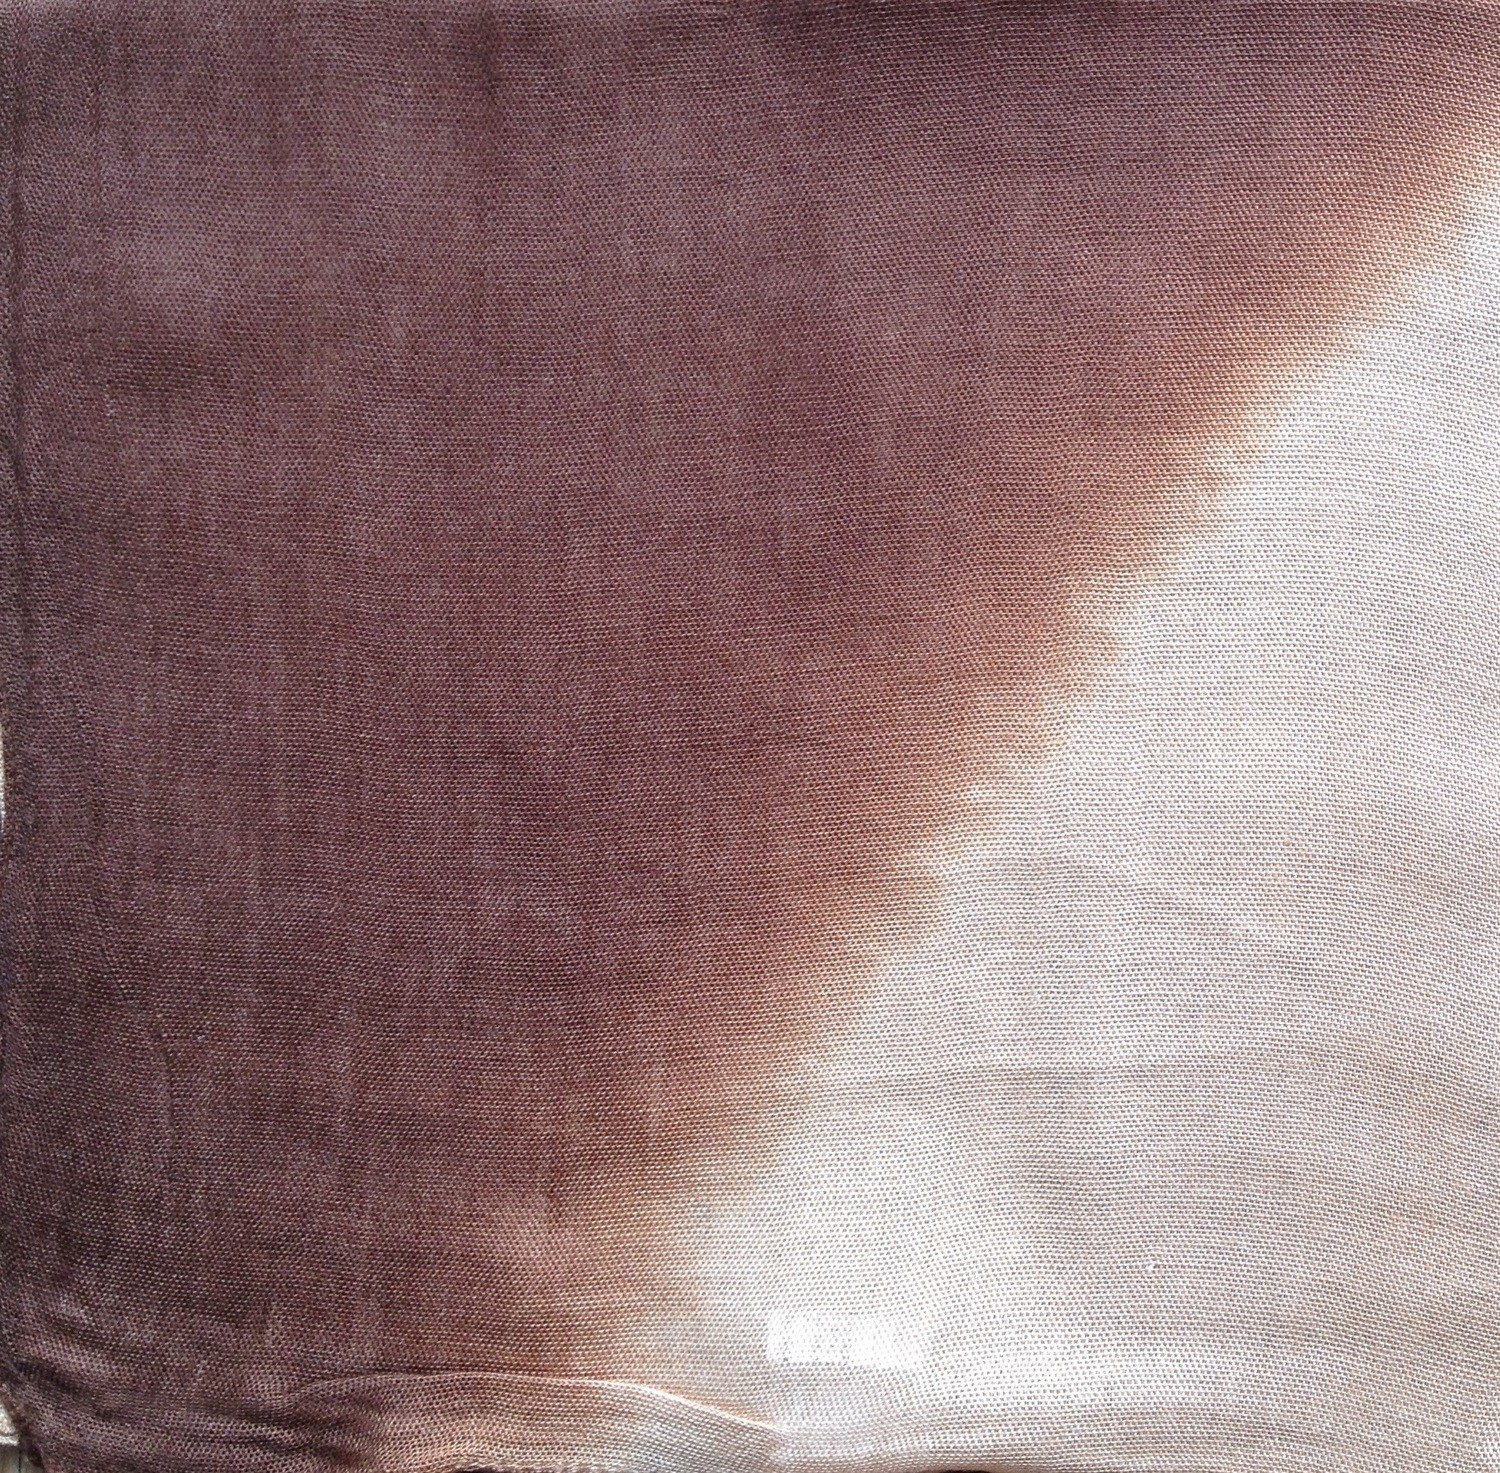 Brown and beige two tone tie dyed tichel